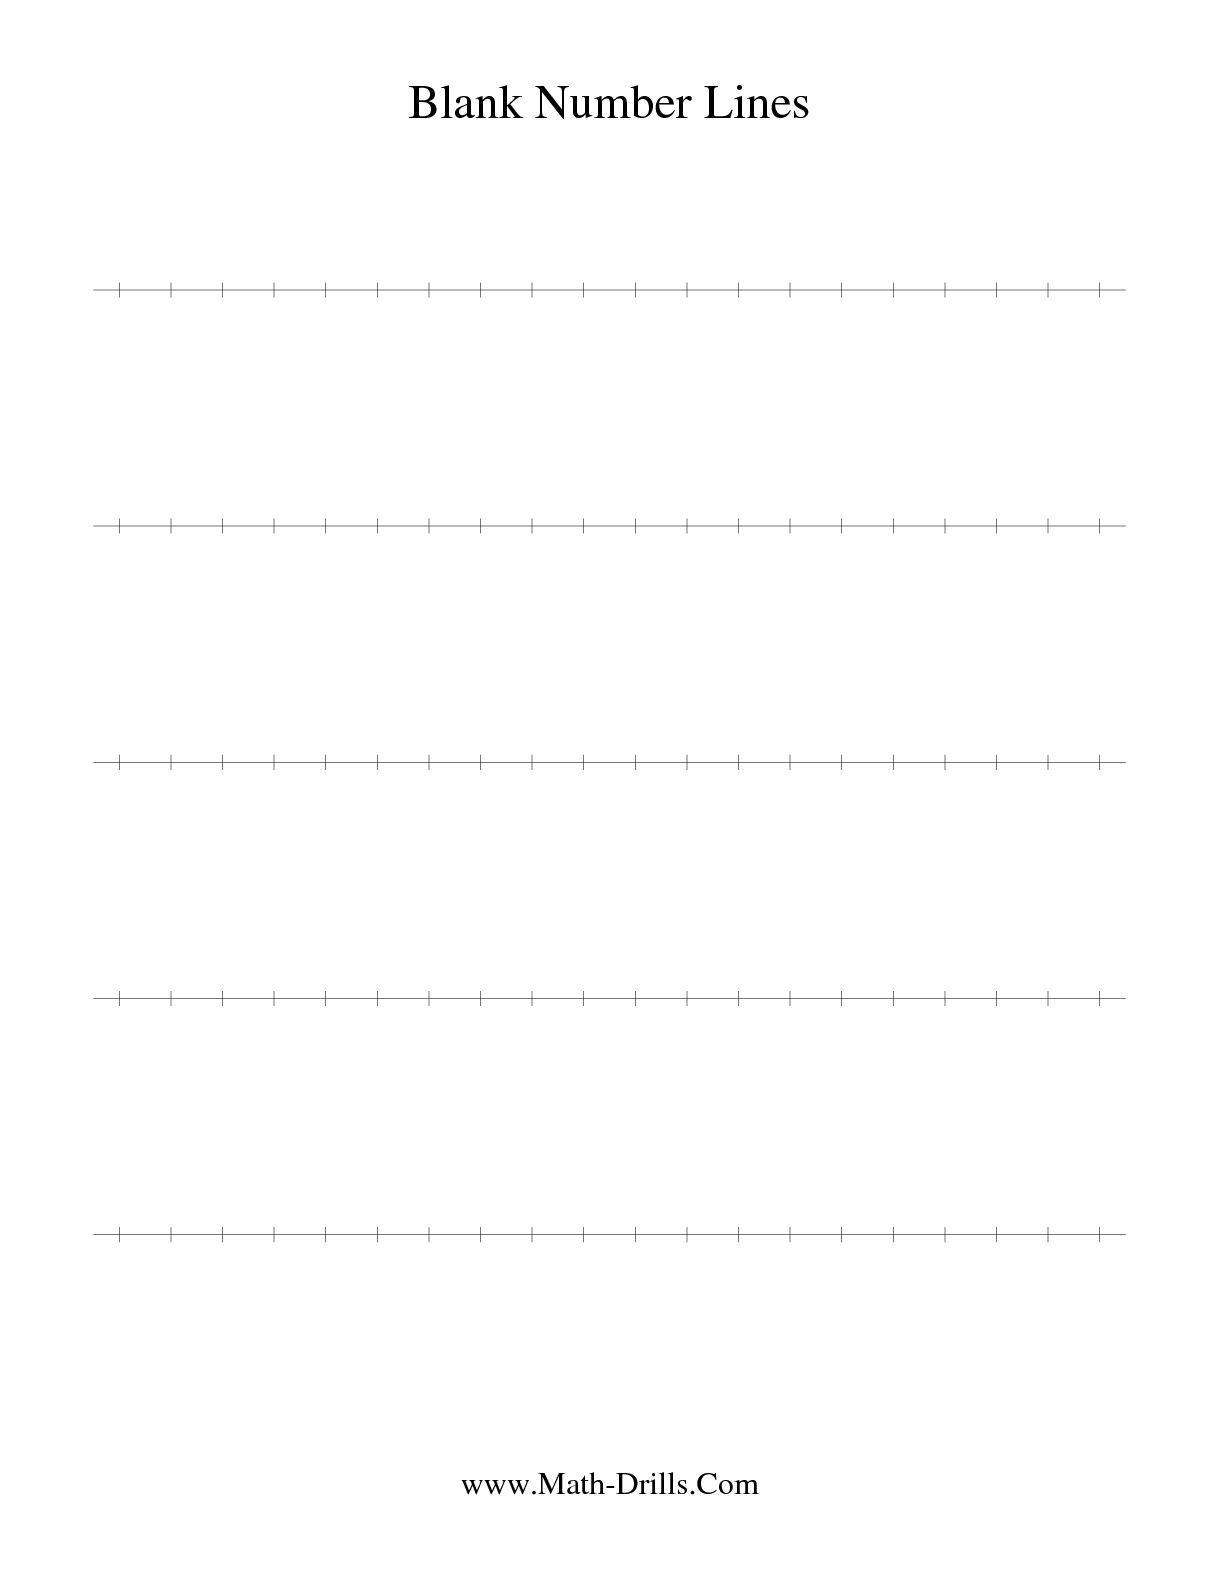 worksheet Math Number Line the blank number line math worksheet from sense page at drills